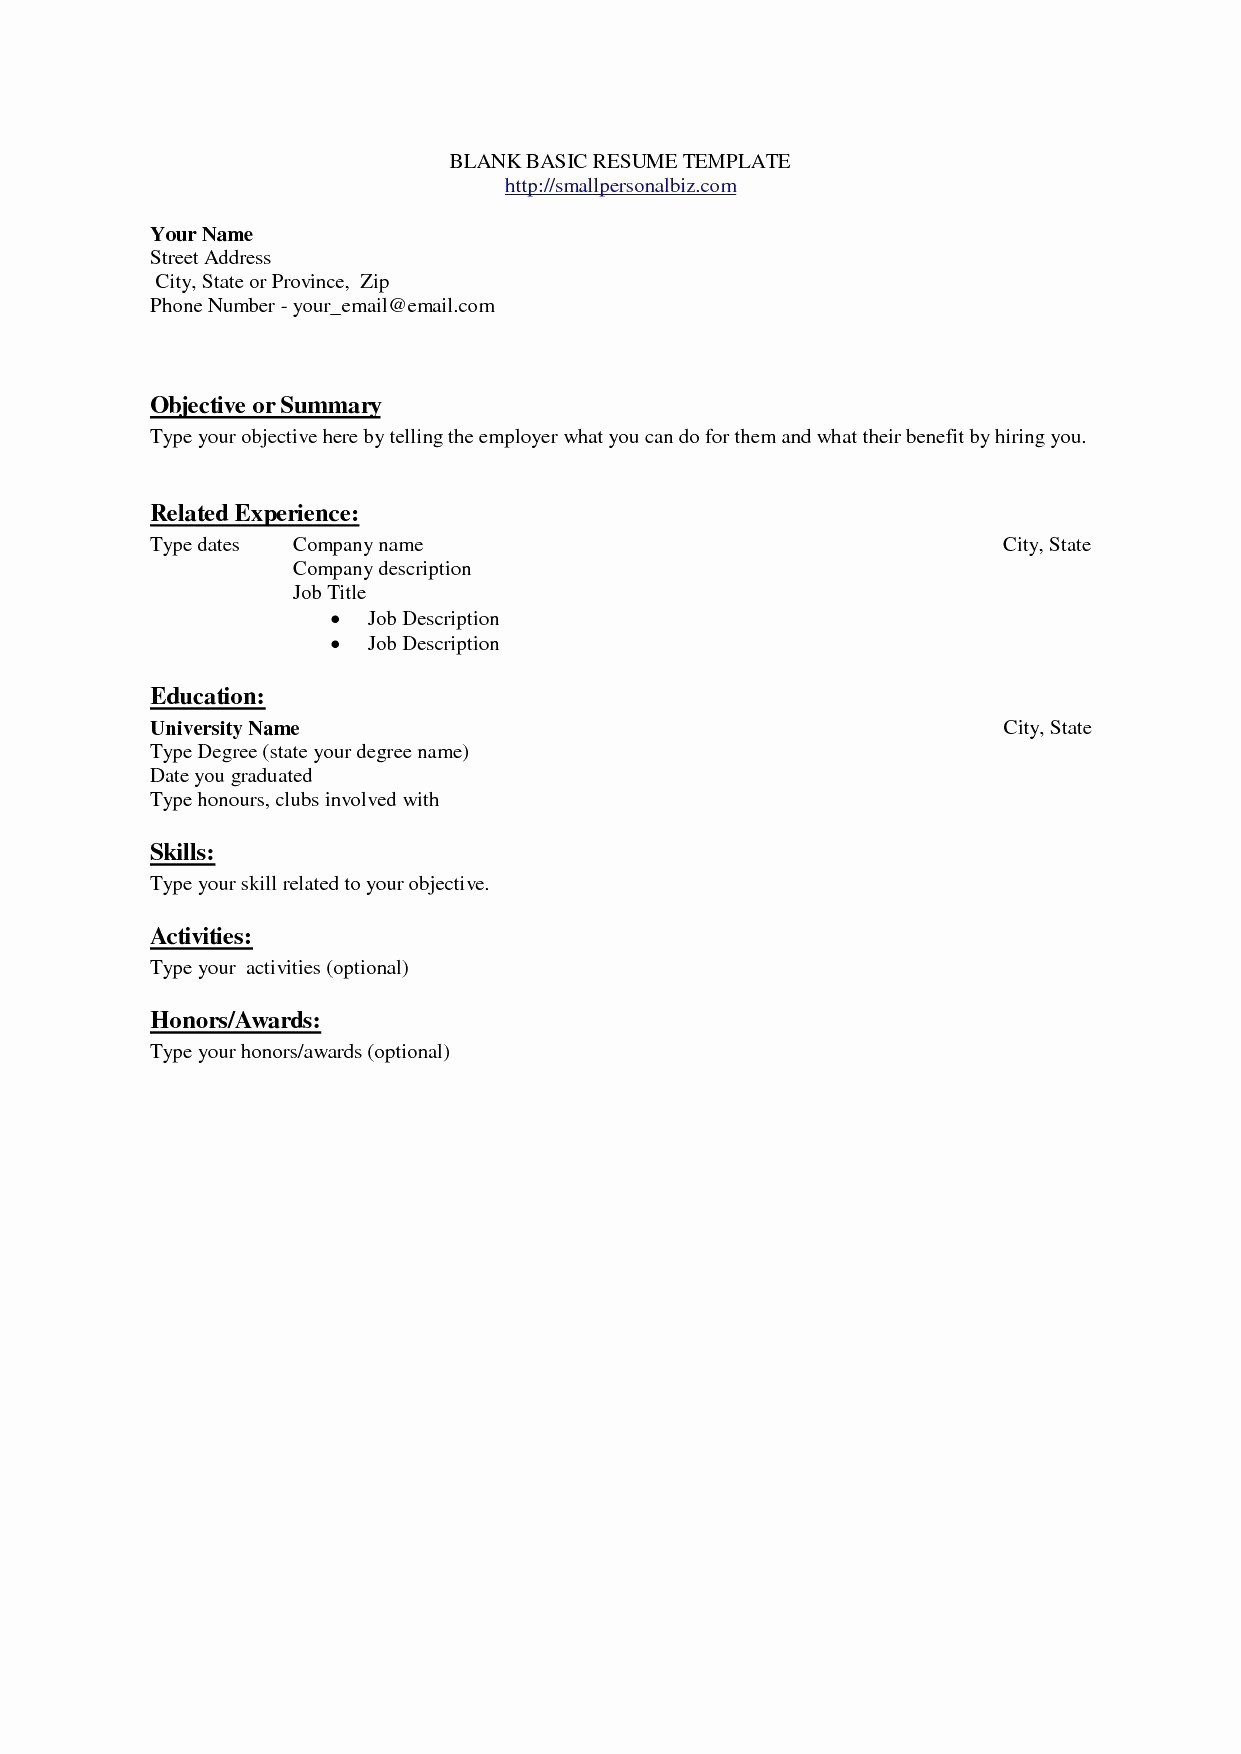 Marissa Mayer Resume Template - Marissa Mayer Resume